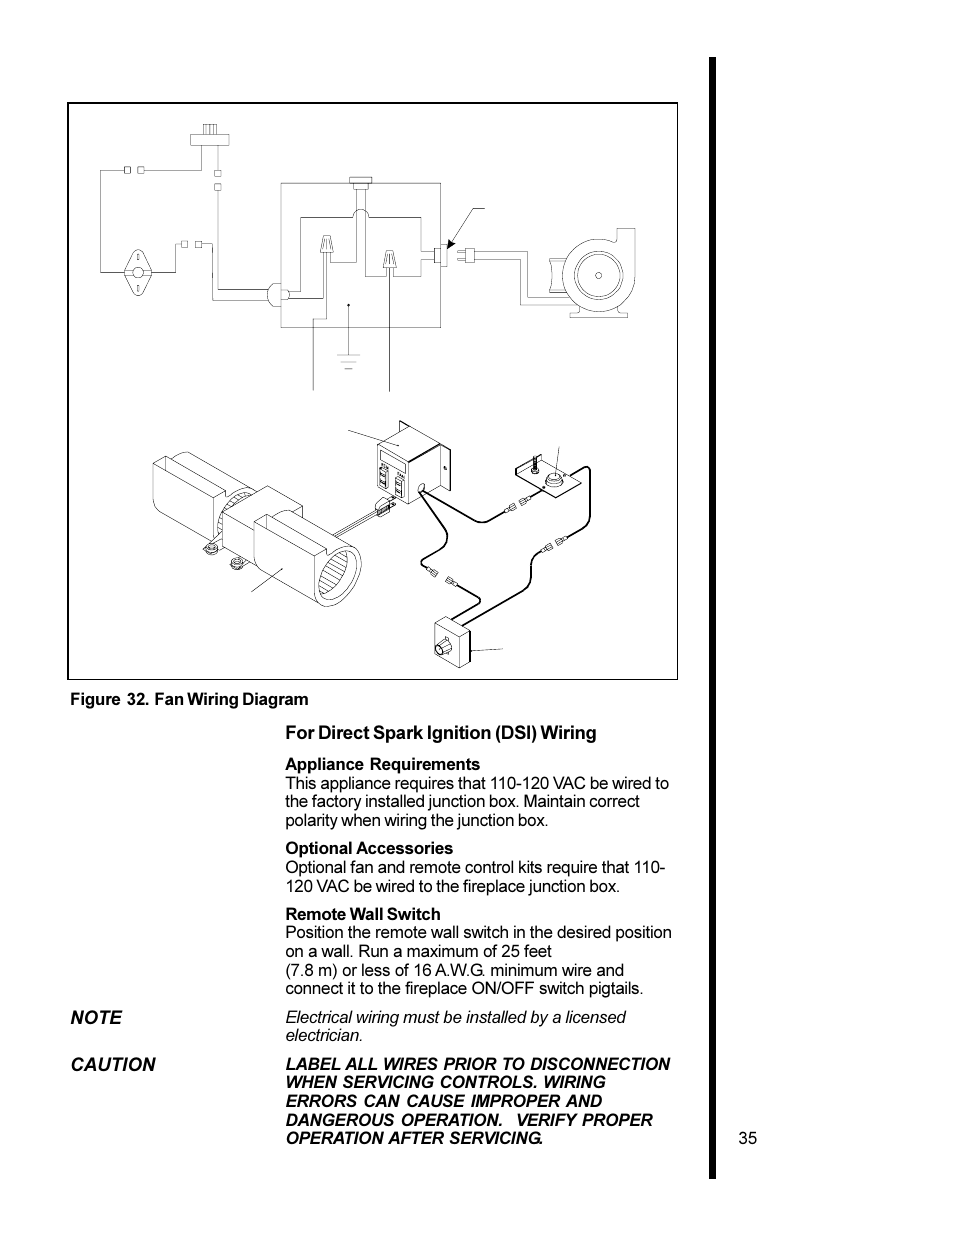 medium resolution of for direct spark ignition dsi wiring caution 35 figure 32 fan wiring diagram heat glo fireplace heat n glo 6000xlt cdn user manual page 35 43